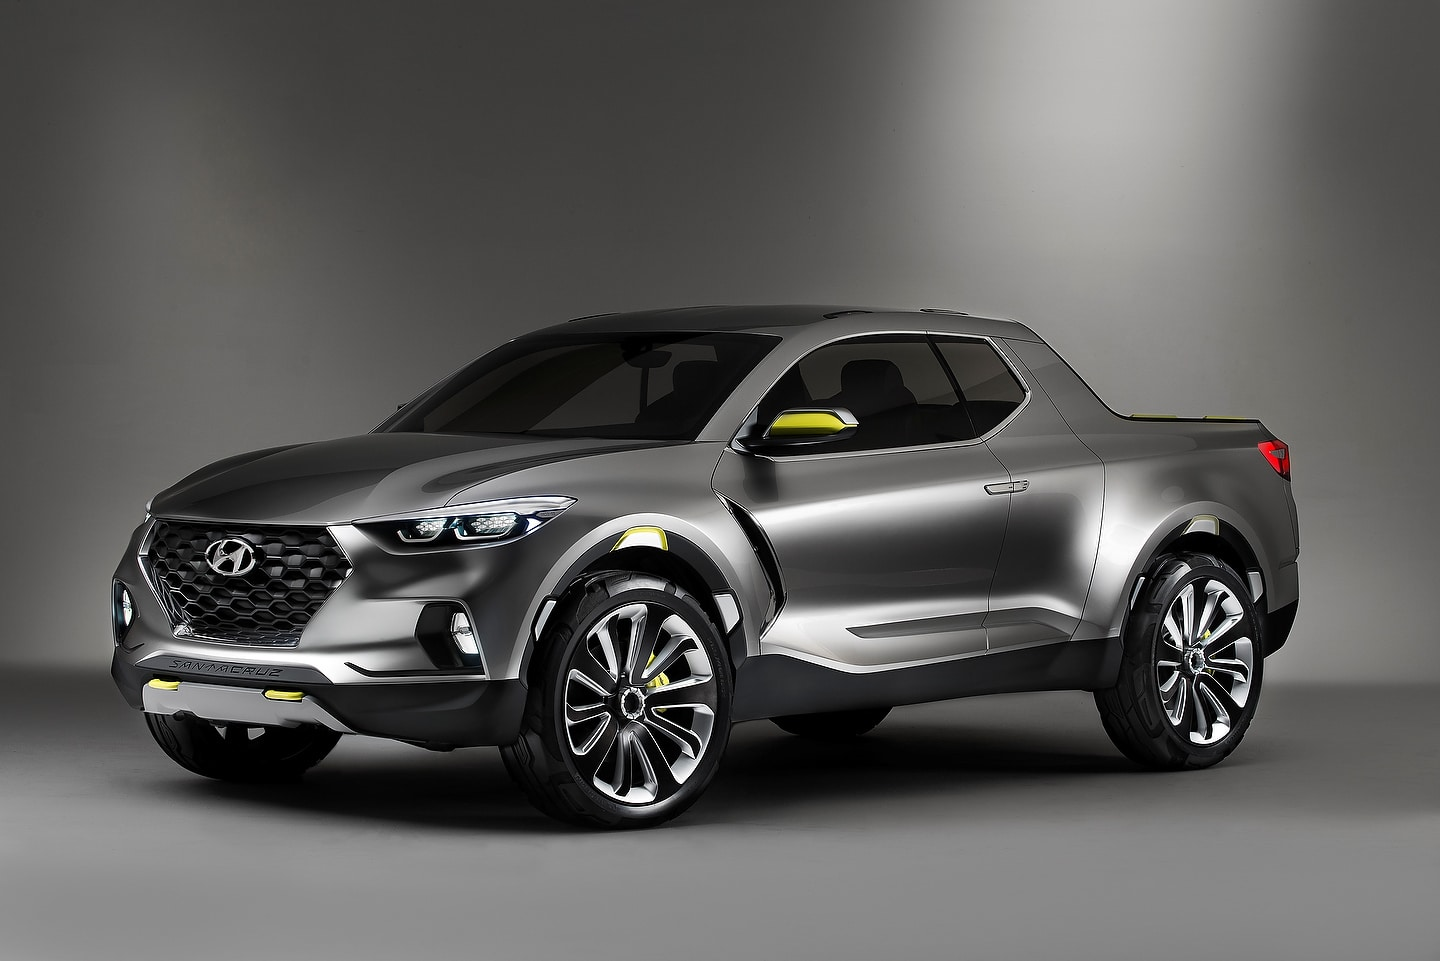 The Hyundai Santa Cruz via concept rendering.